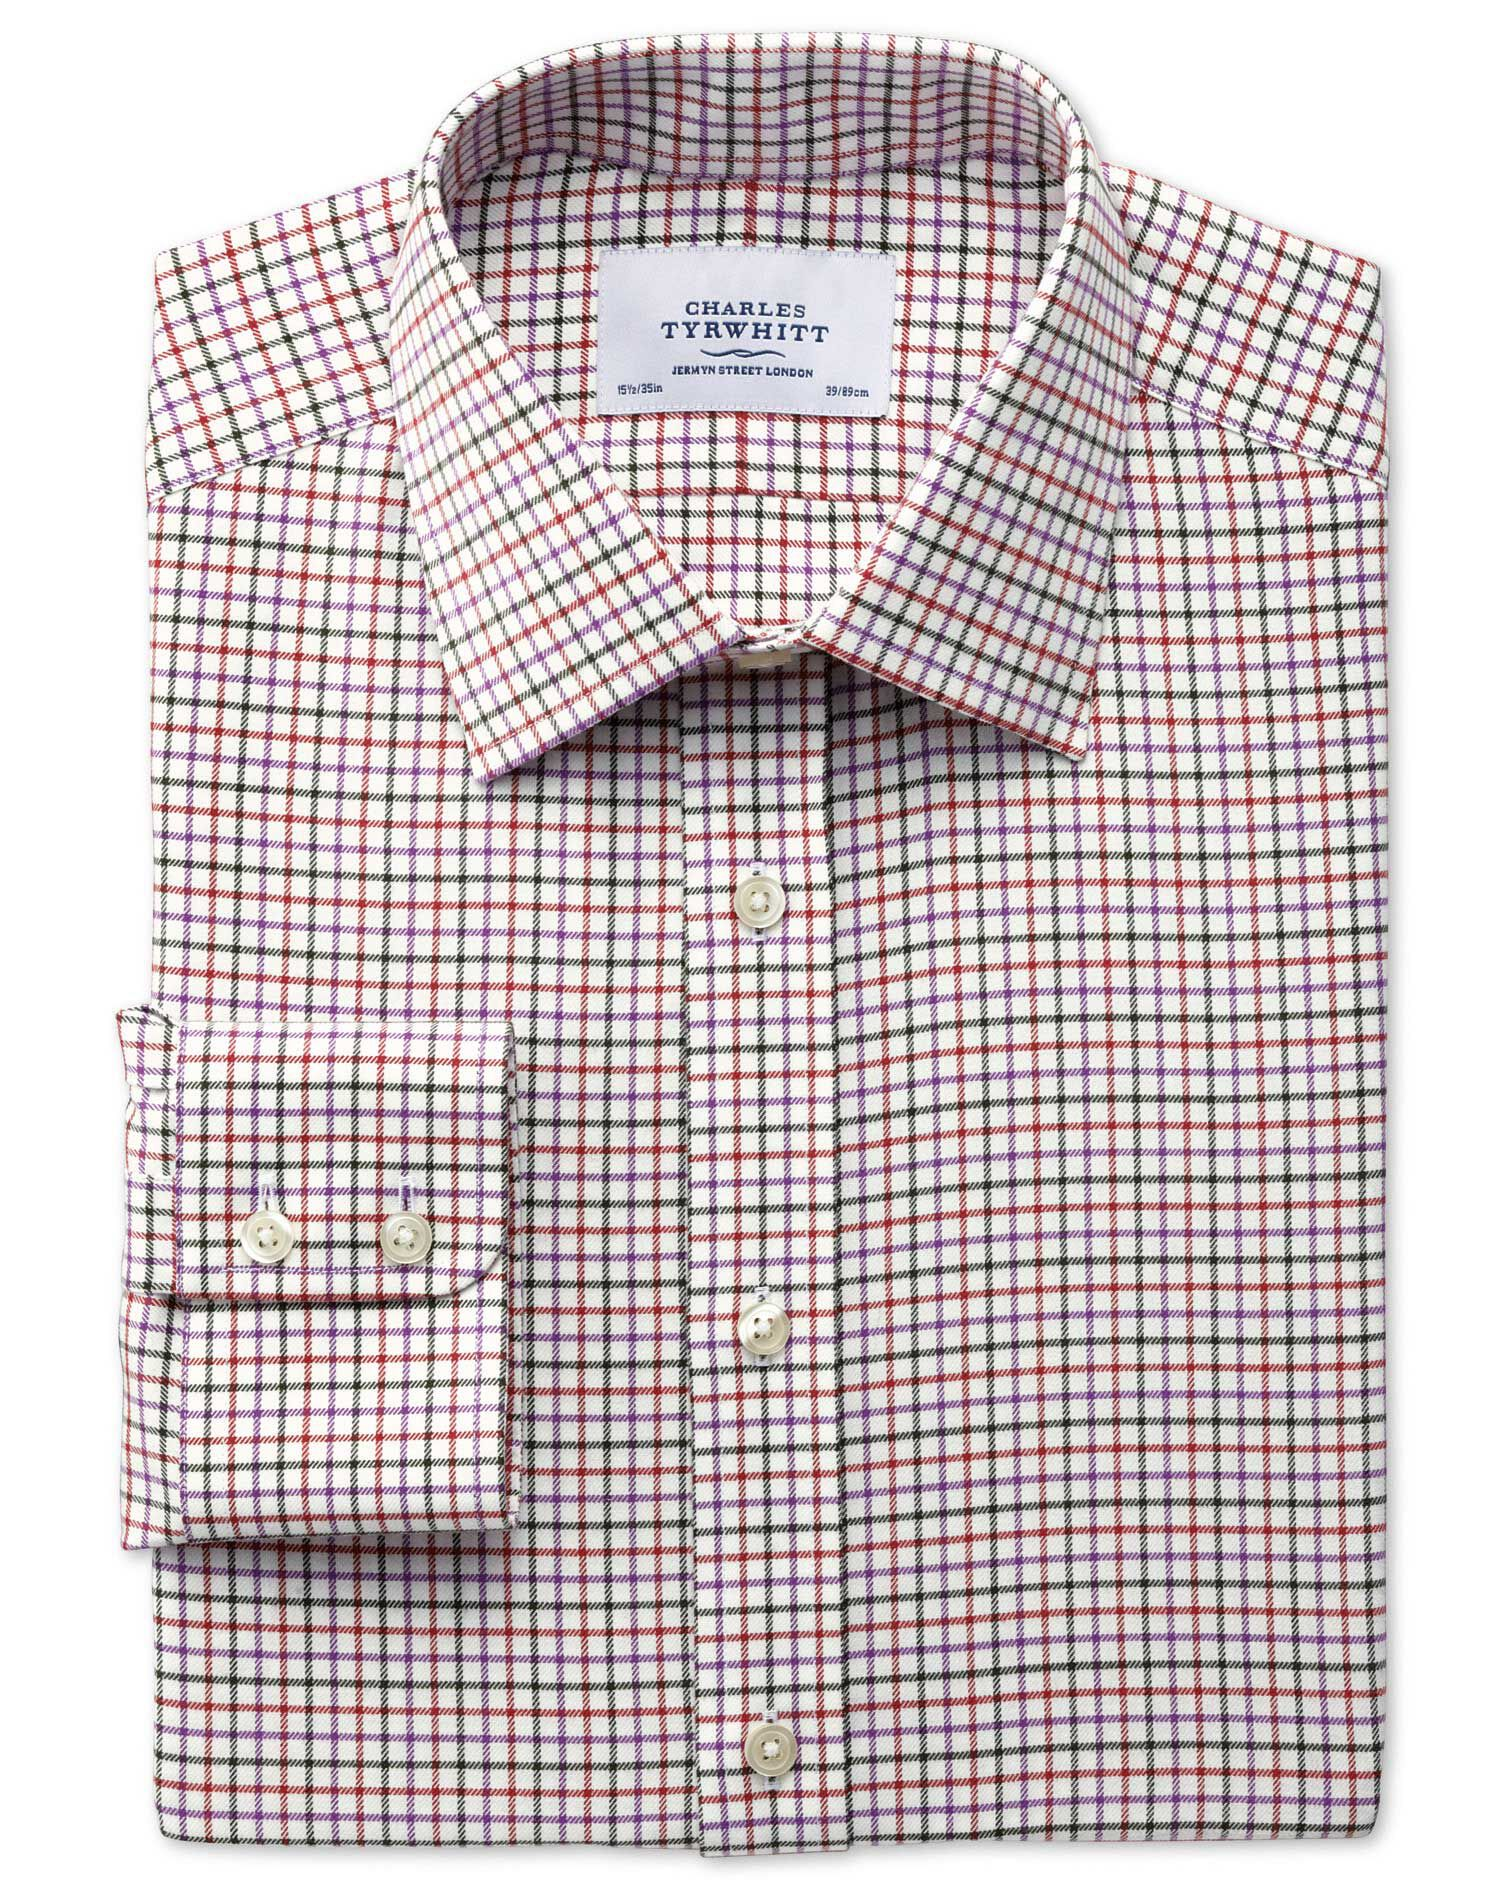 Charles Tyrwhitt Classic Fit Country Check Purple and Orange Cotton Formal Shirt Size 19/37